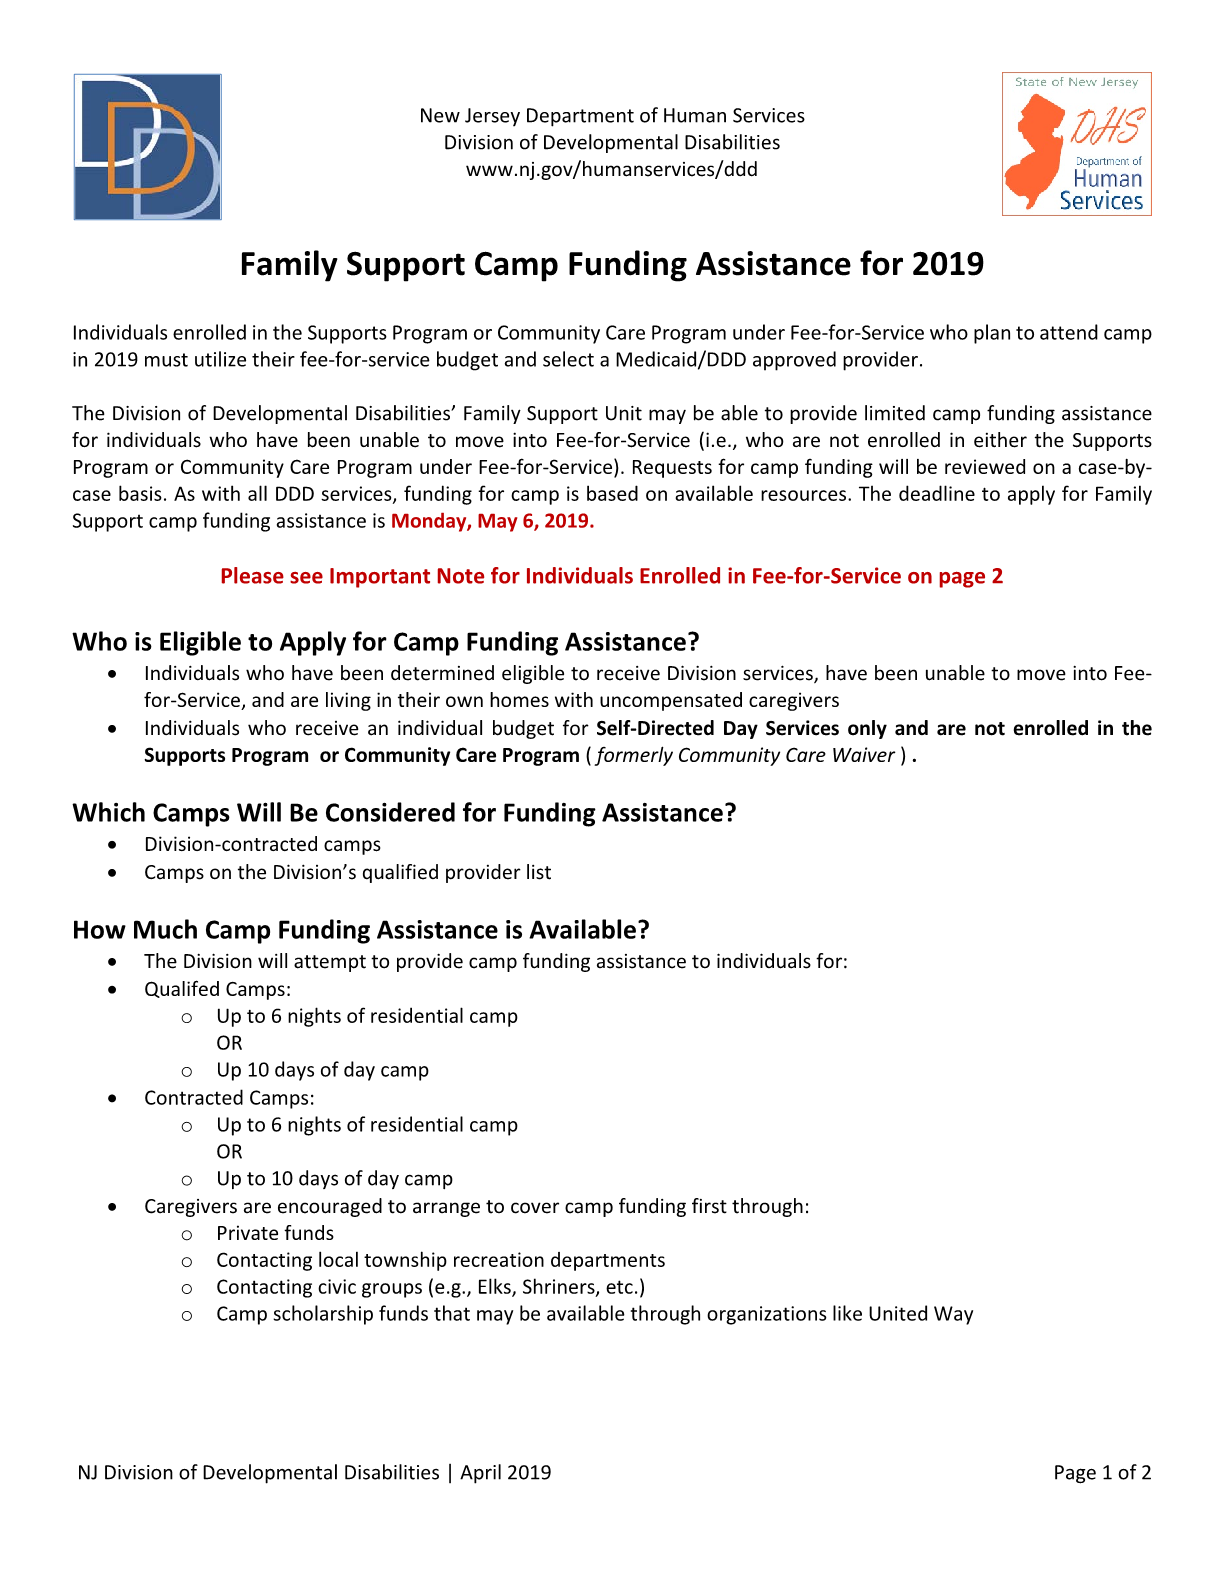 2019 Family Support Camp Funding Assistance